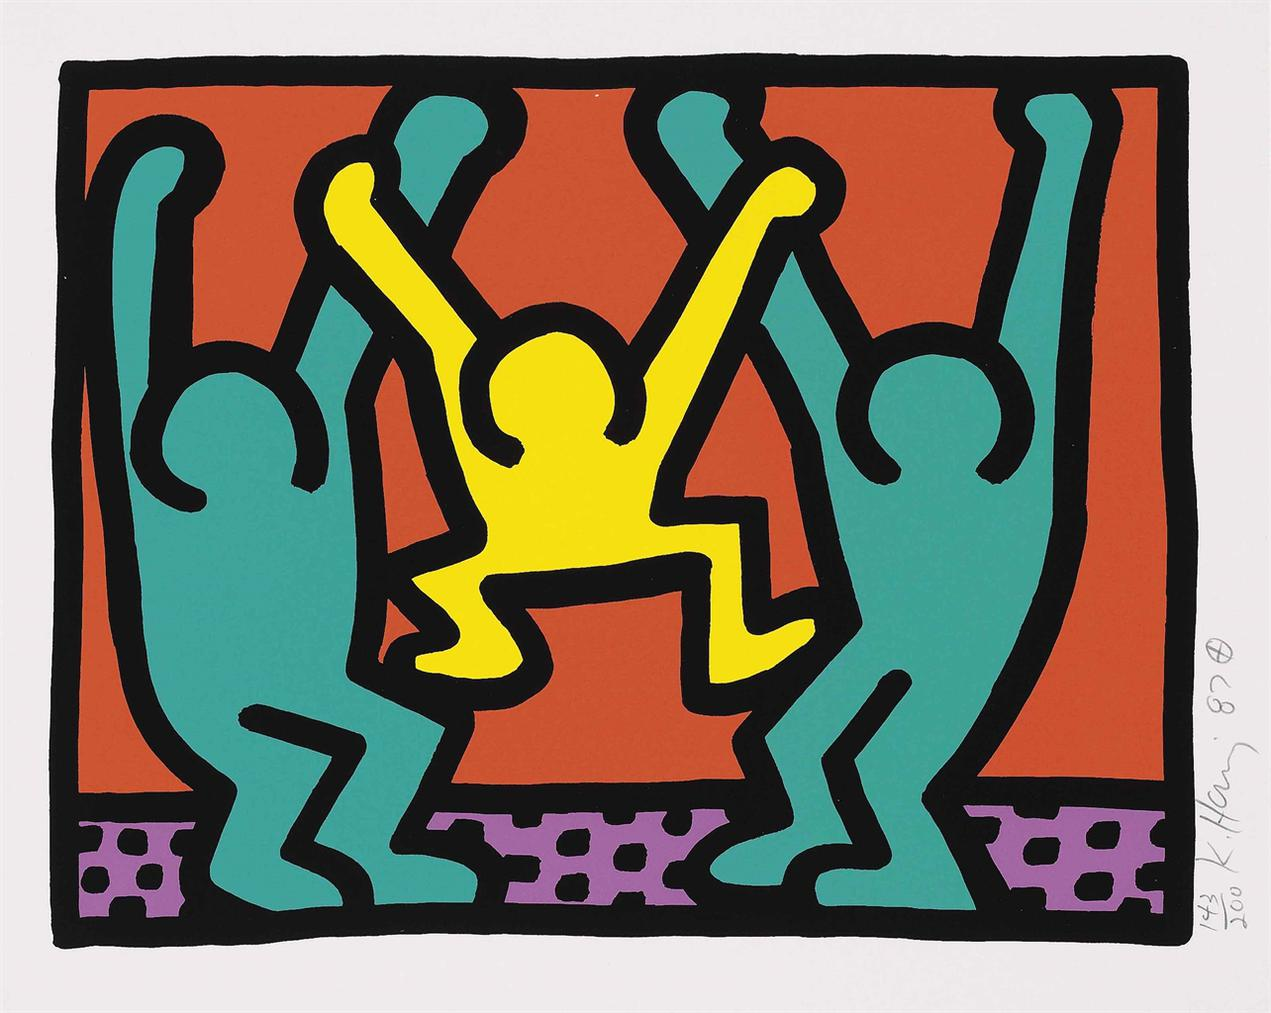 Keith Haring-One Plate, From: Pop Shop I-1987